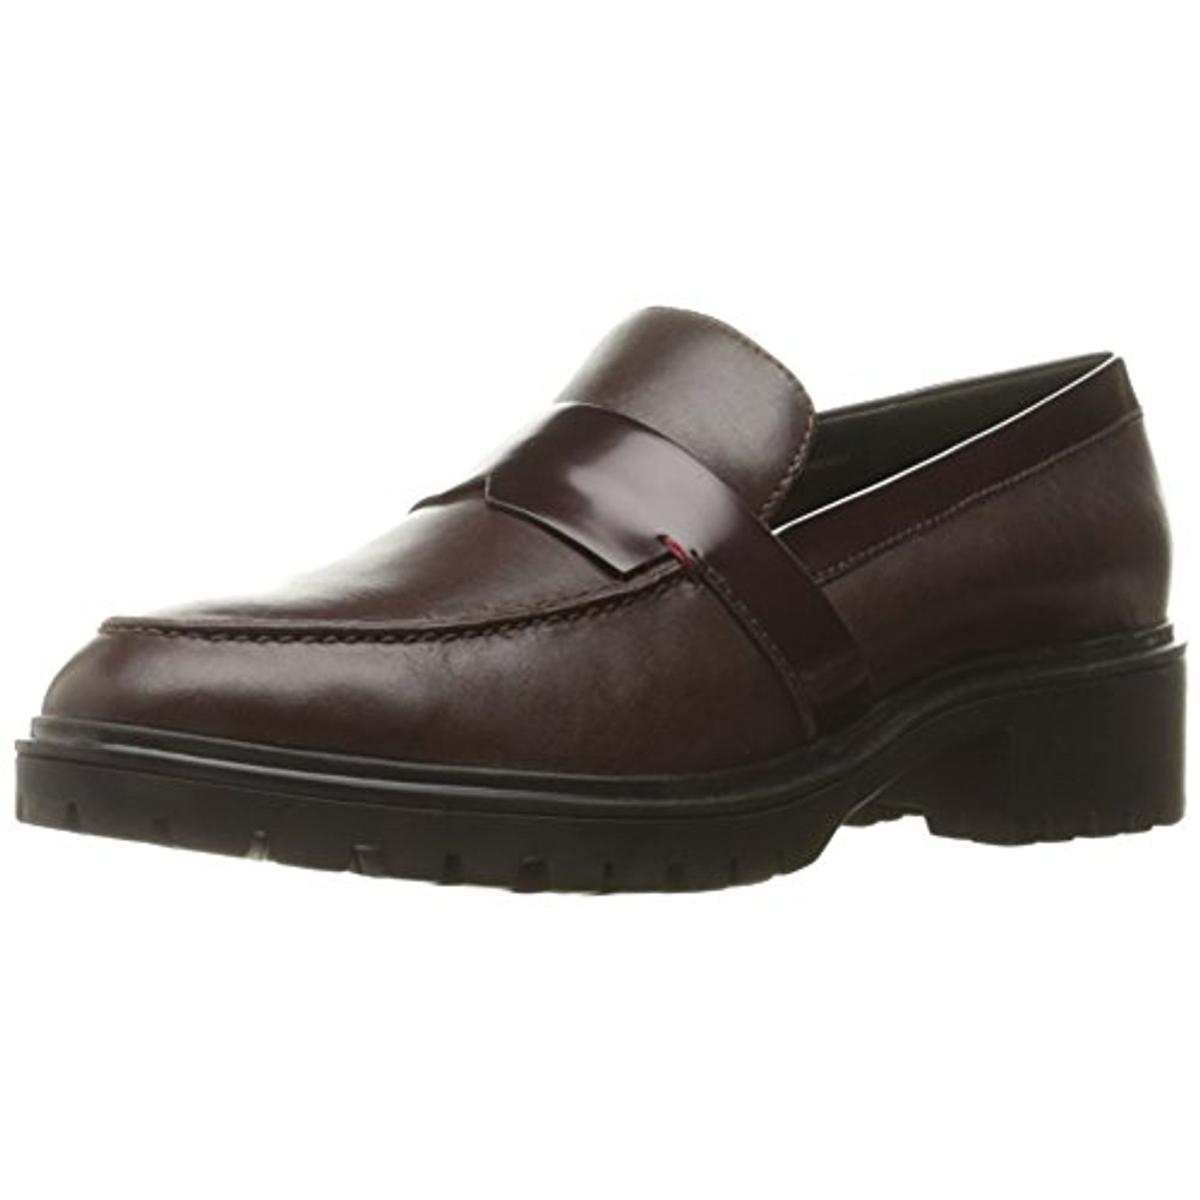 Geox Womens Peaceful Leather Slide Loafers